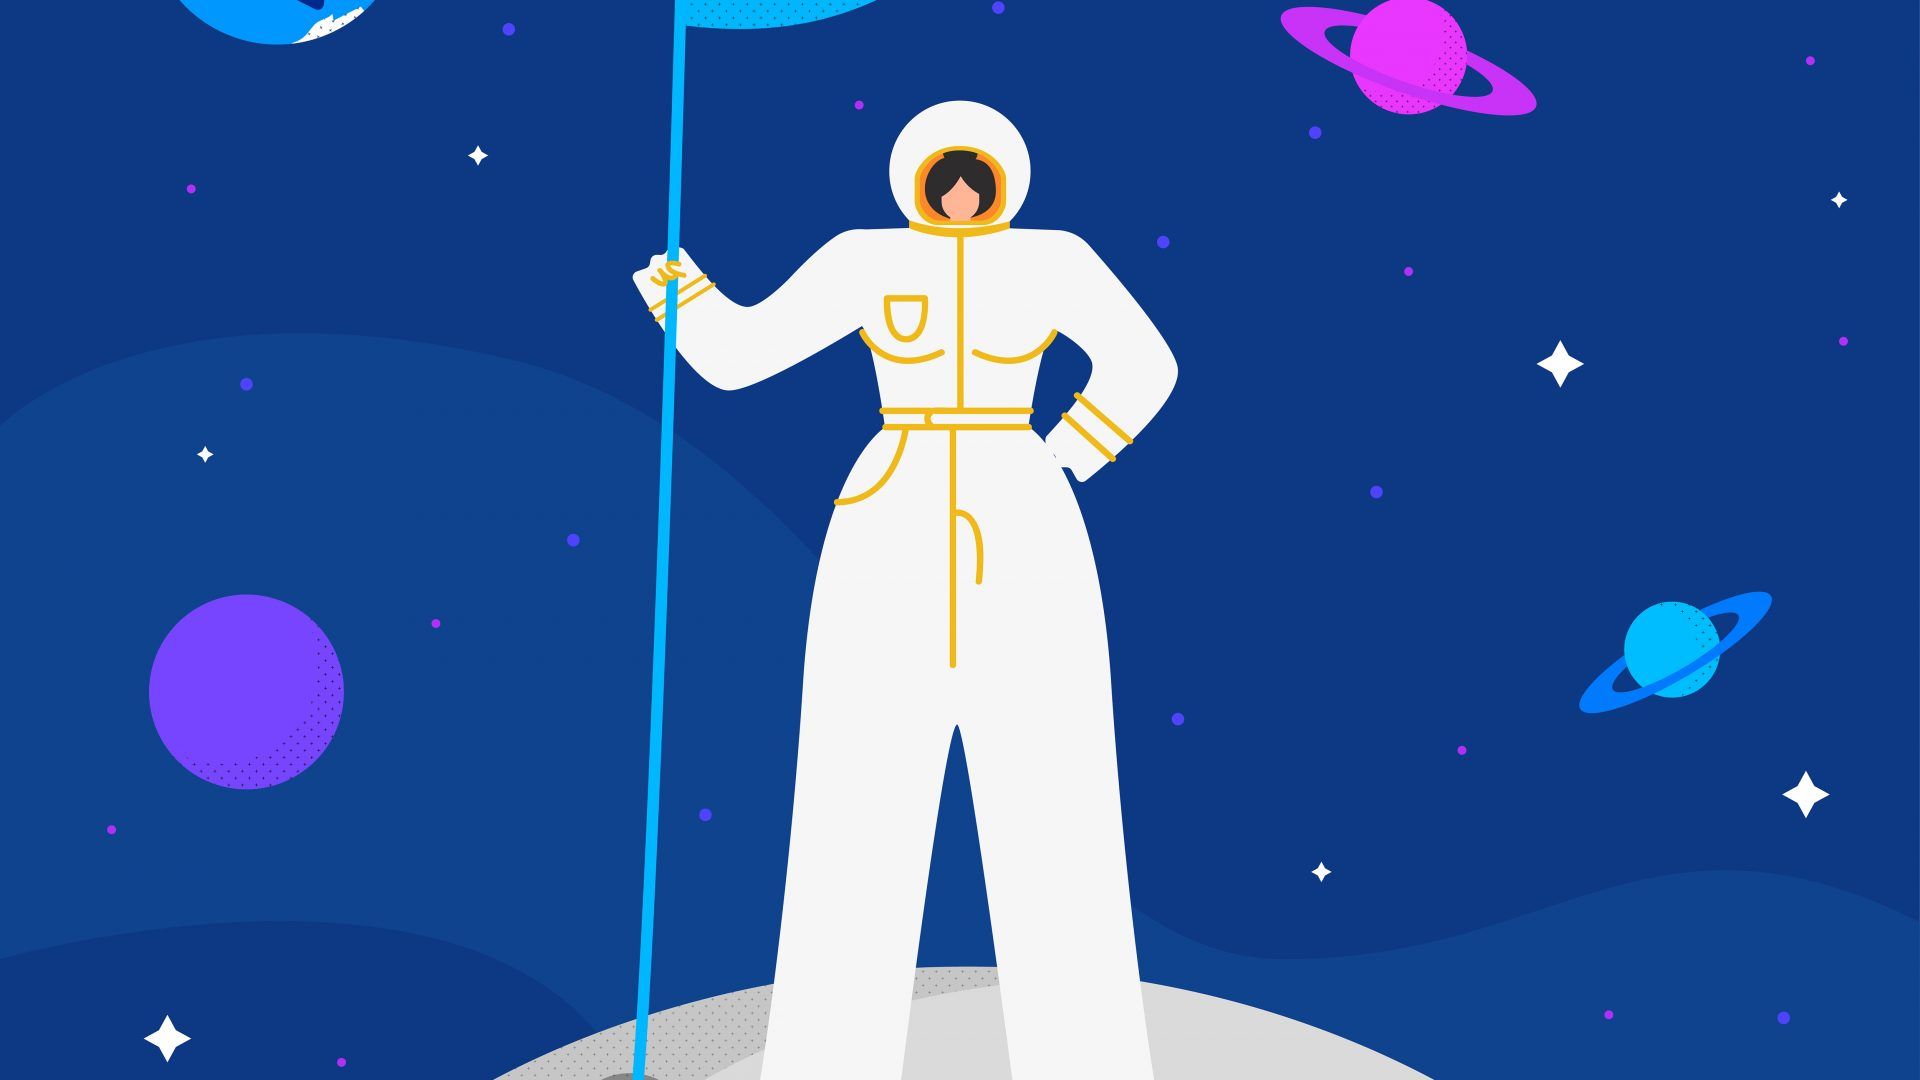 logos_campaign_Women_in_Space_Copernicus